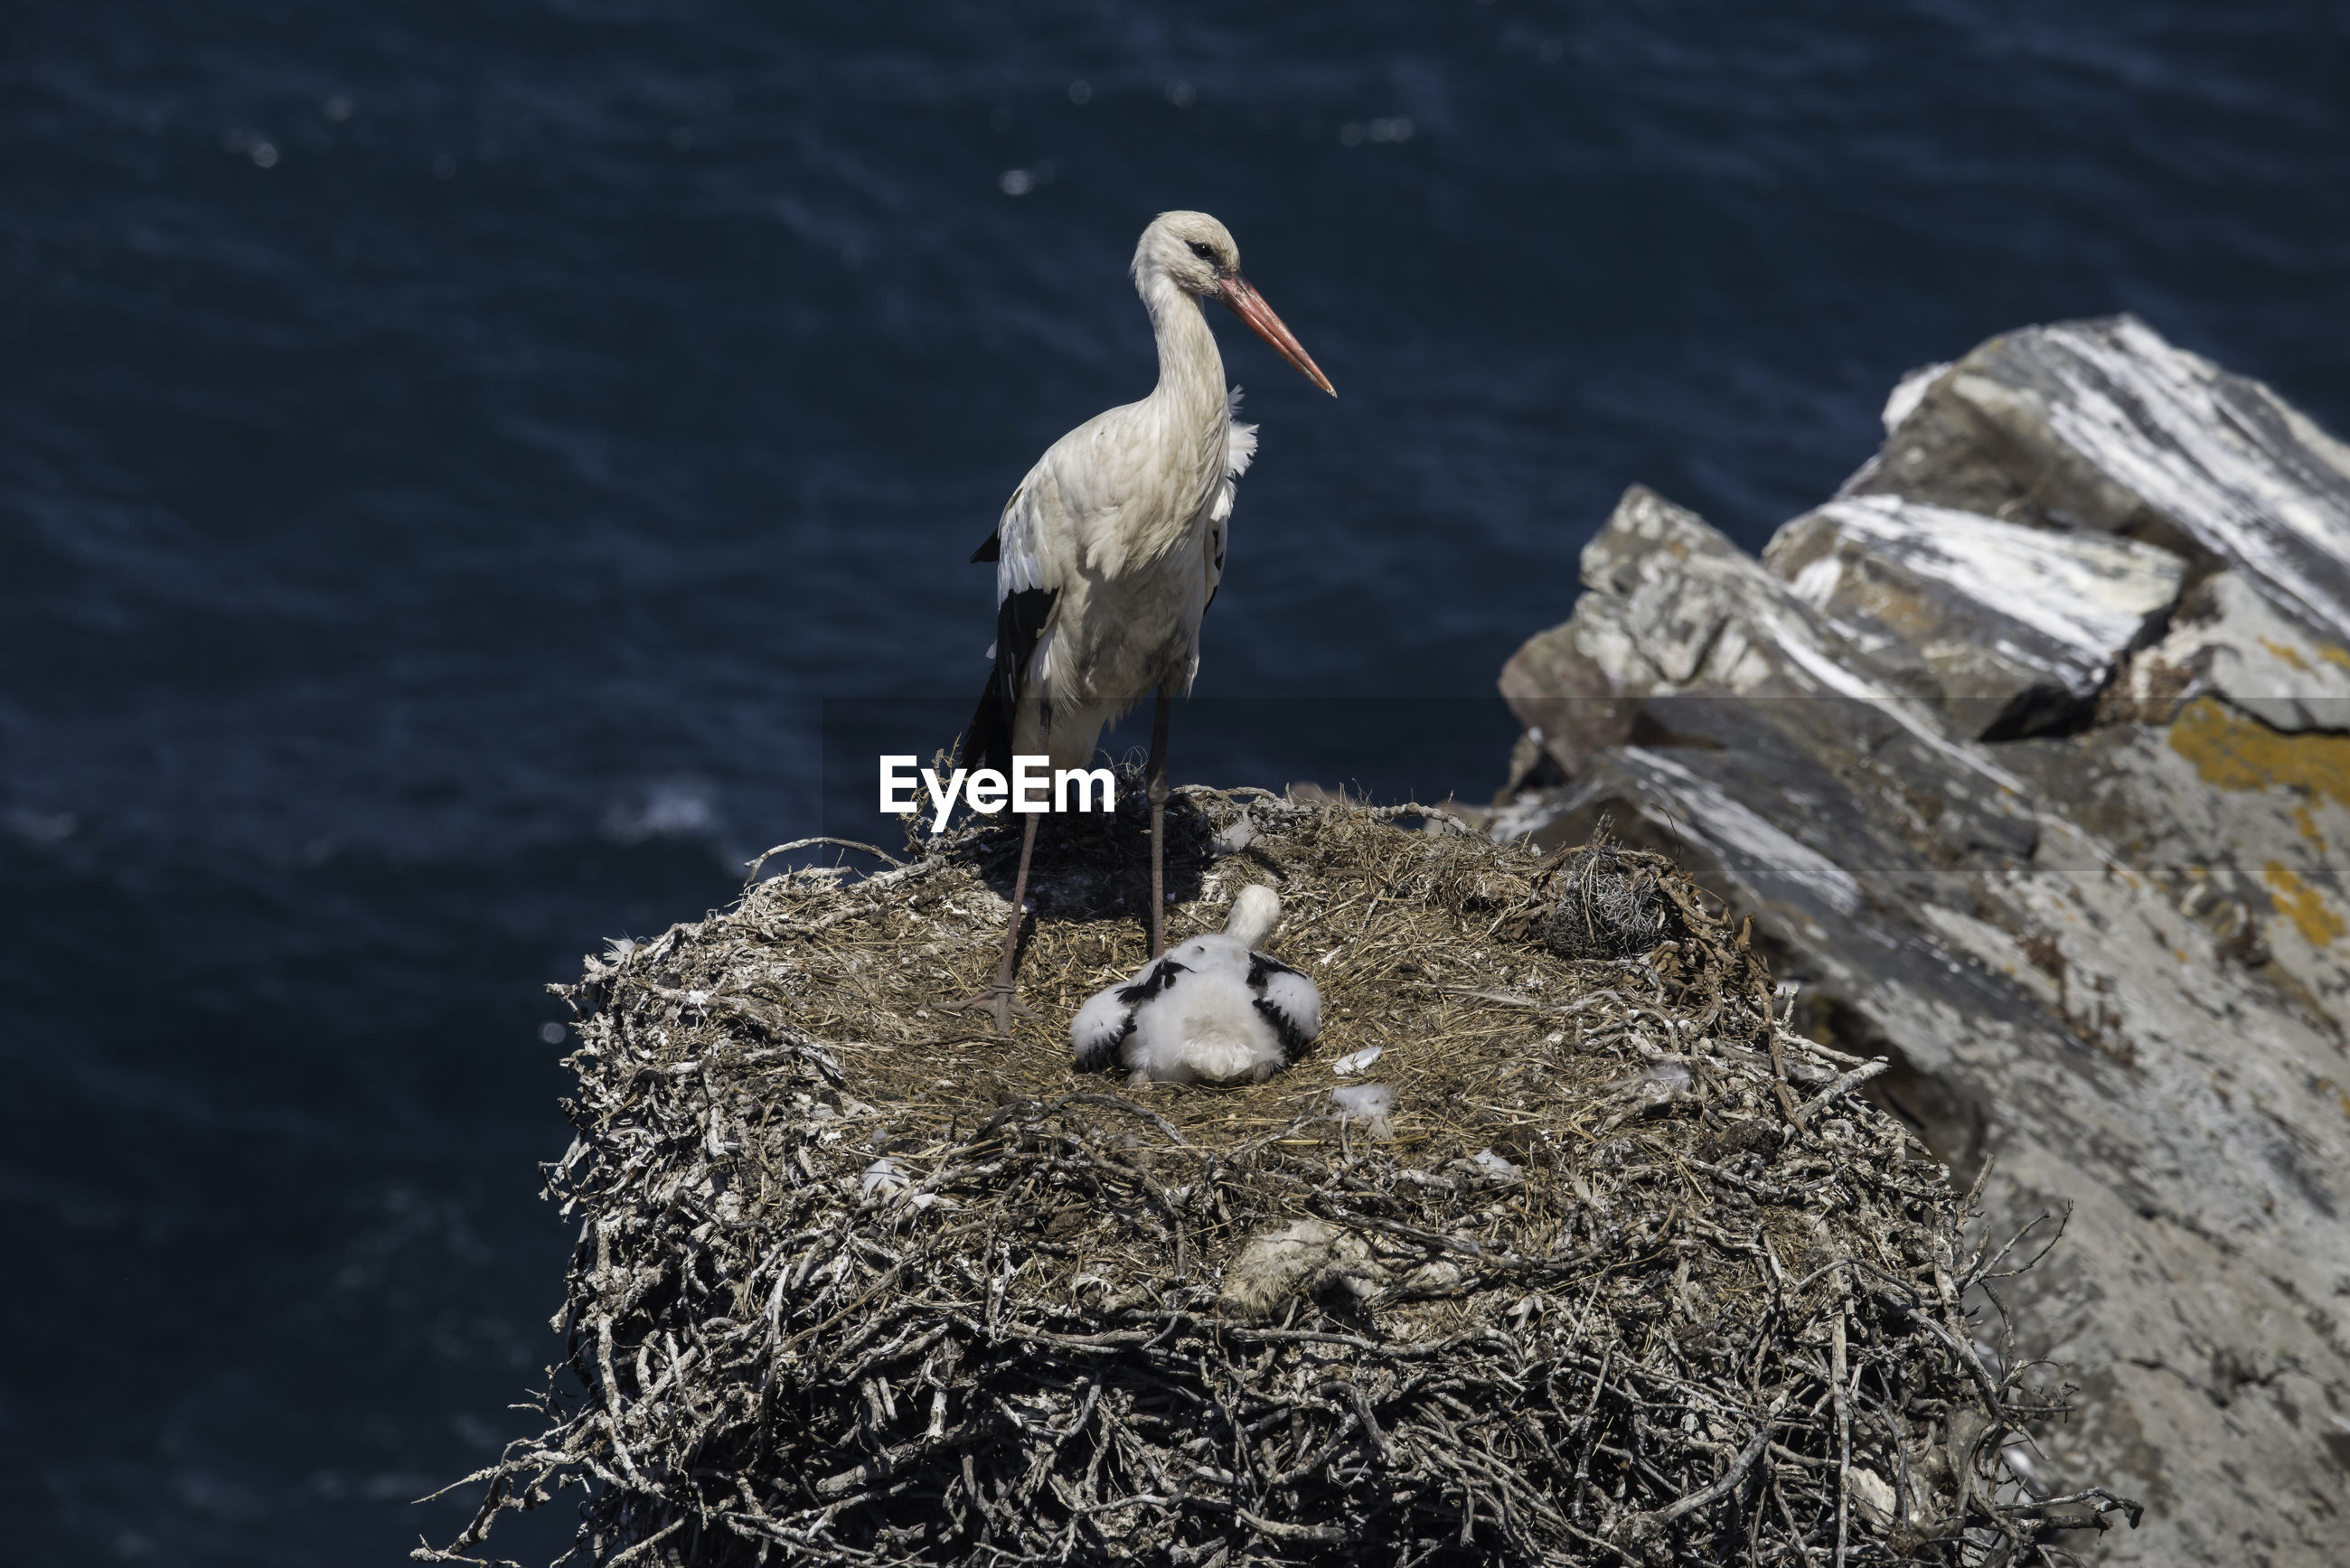 VIEW OF BIRDS IN NEST ON ROCK